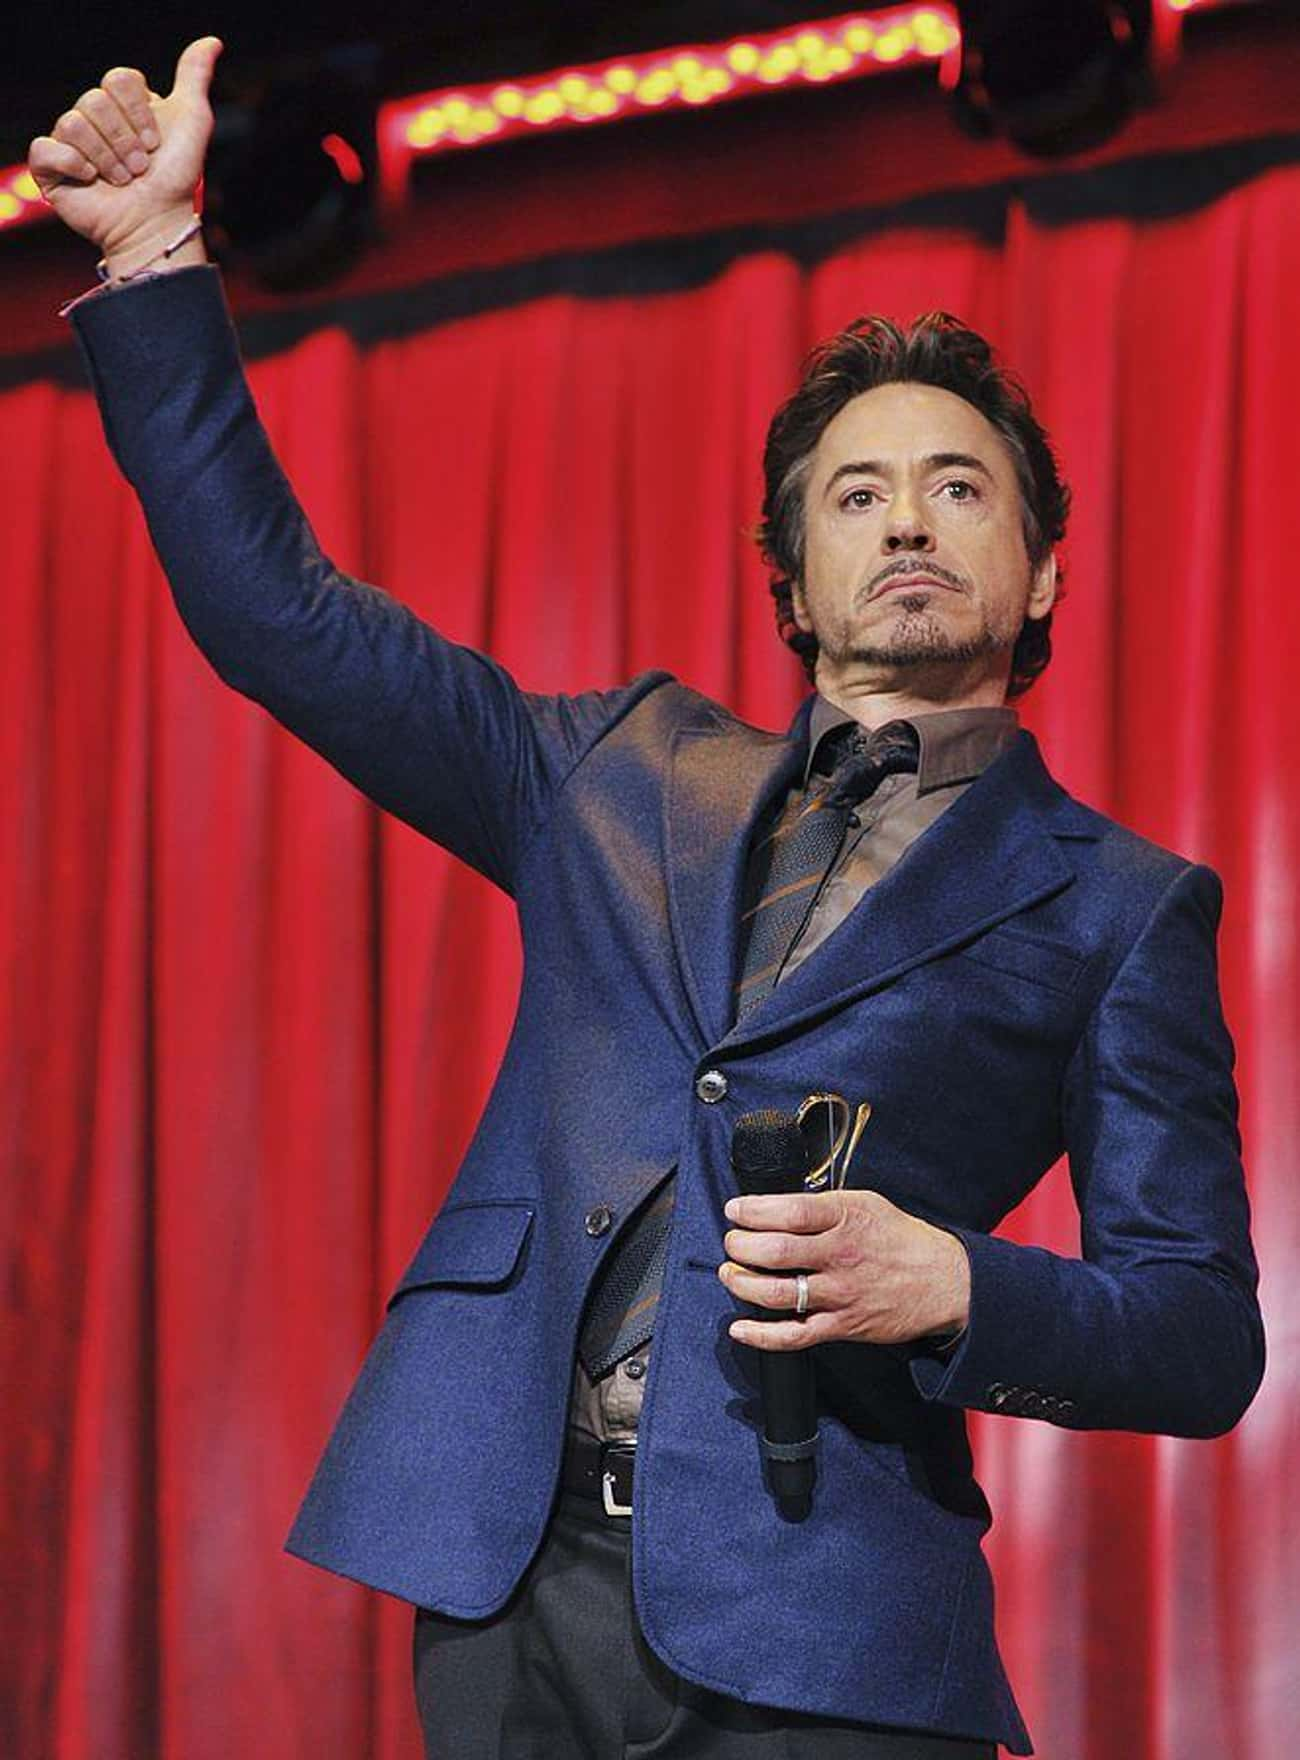 He Was Stopped By Police While is listed (or ranked) 3 on the list Buckwild And Horrifying Things Robert Downey Jr. Somehow Made It Through